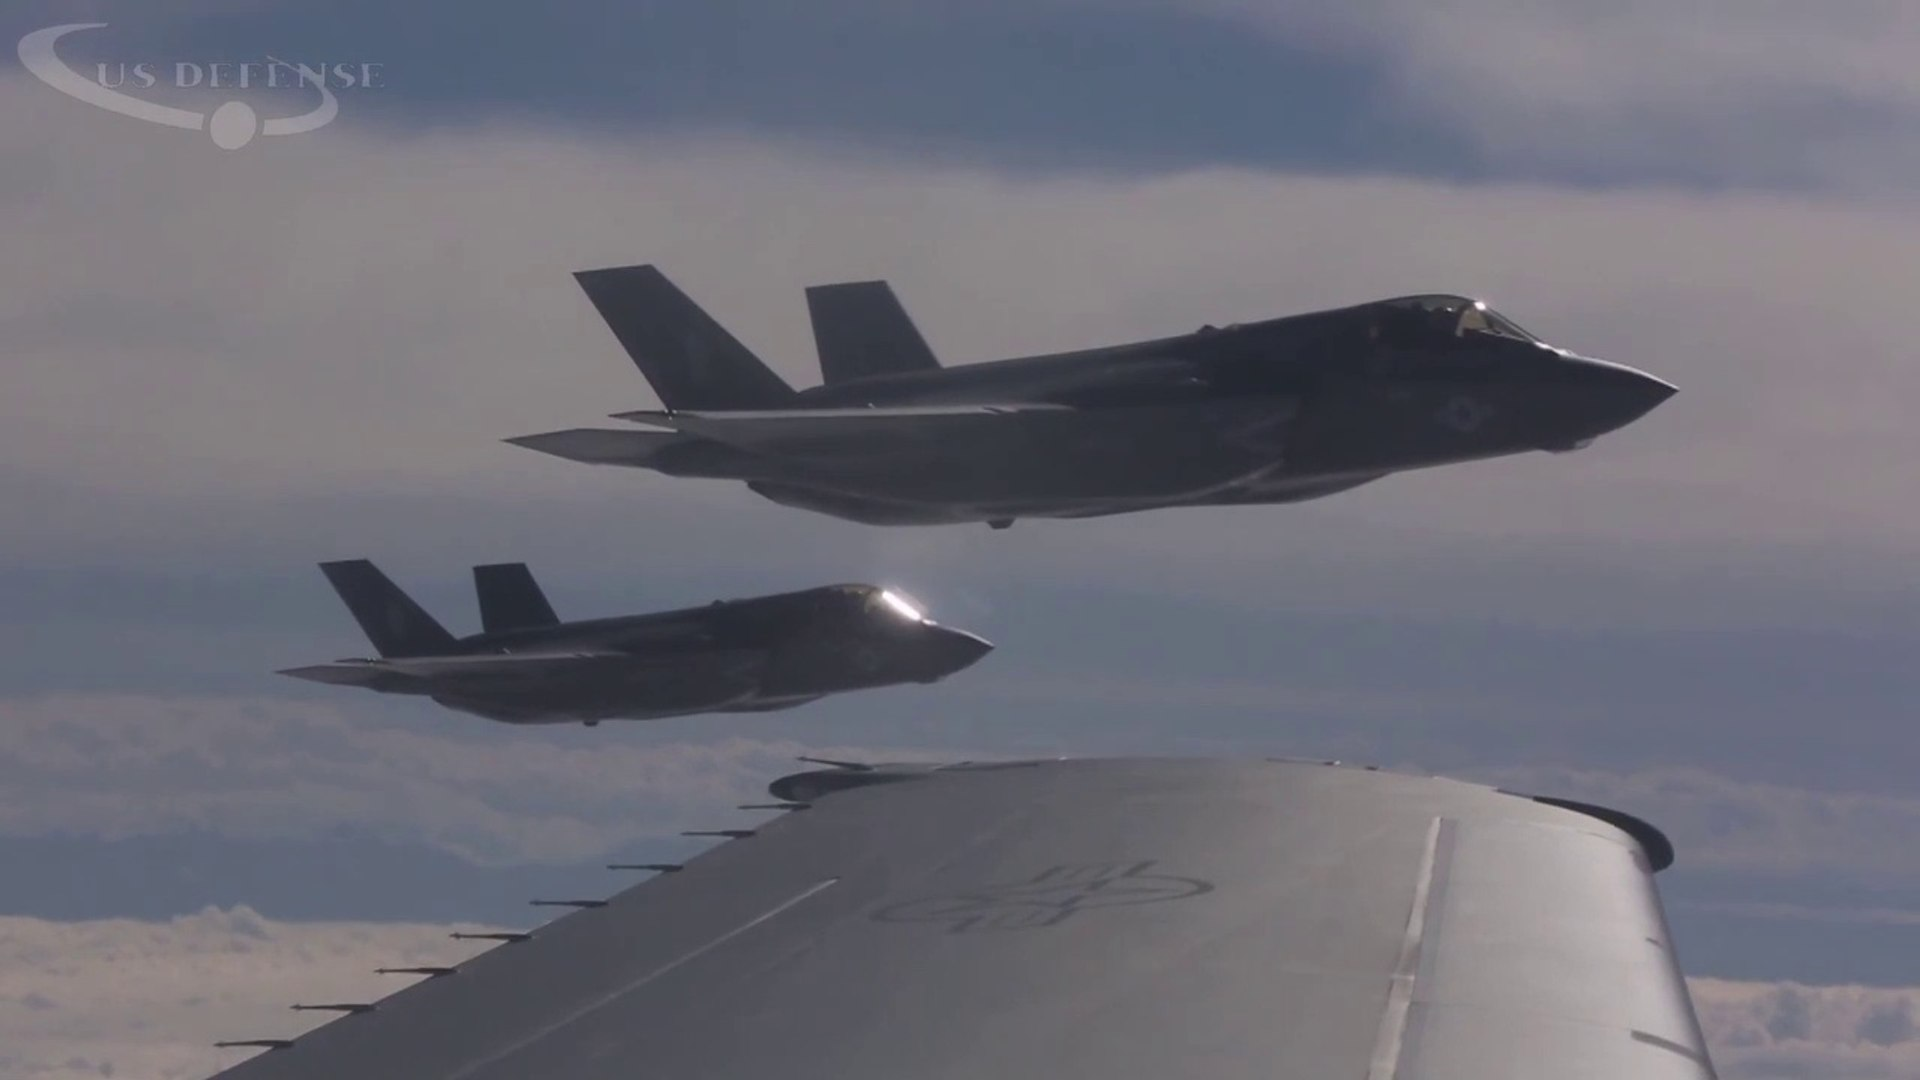 Stealth Combined- The Marines' F-35Bs Are Headed to Alaska to Fight Alongside Air Force F-22s